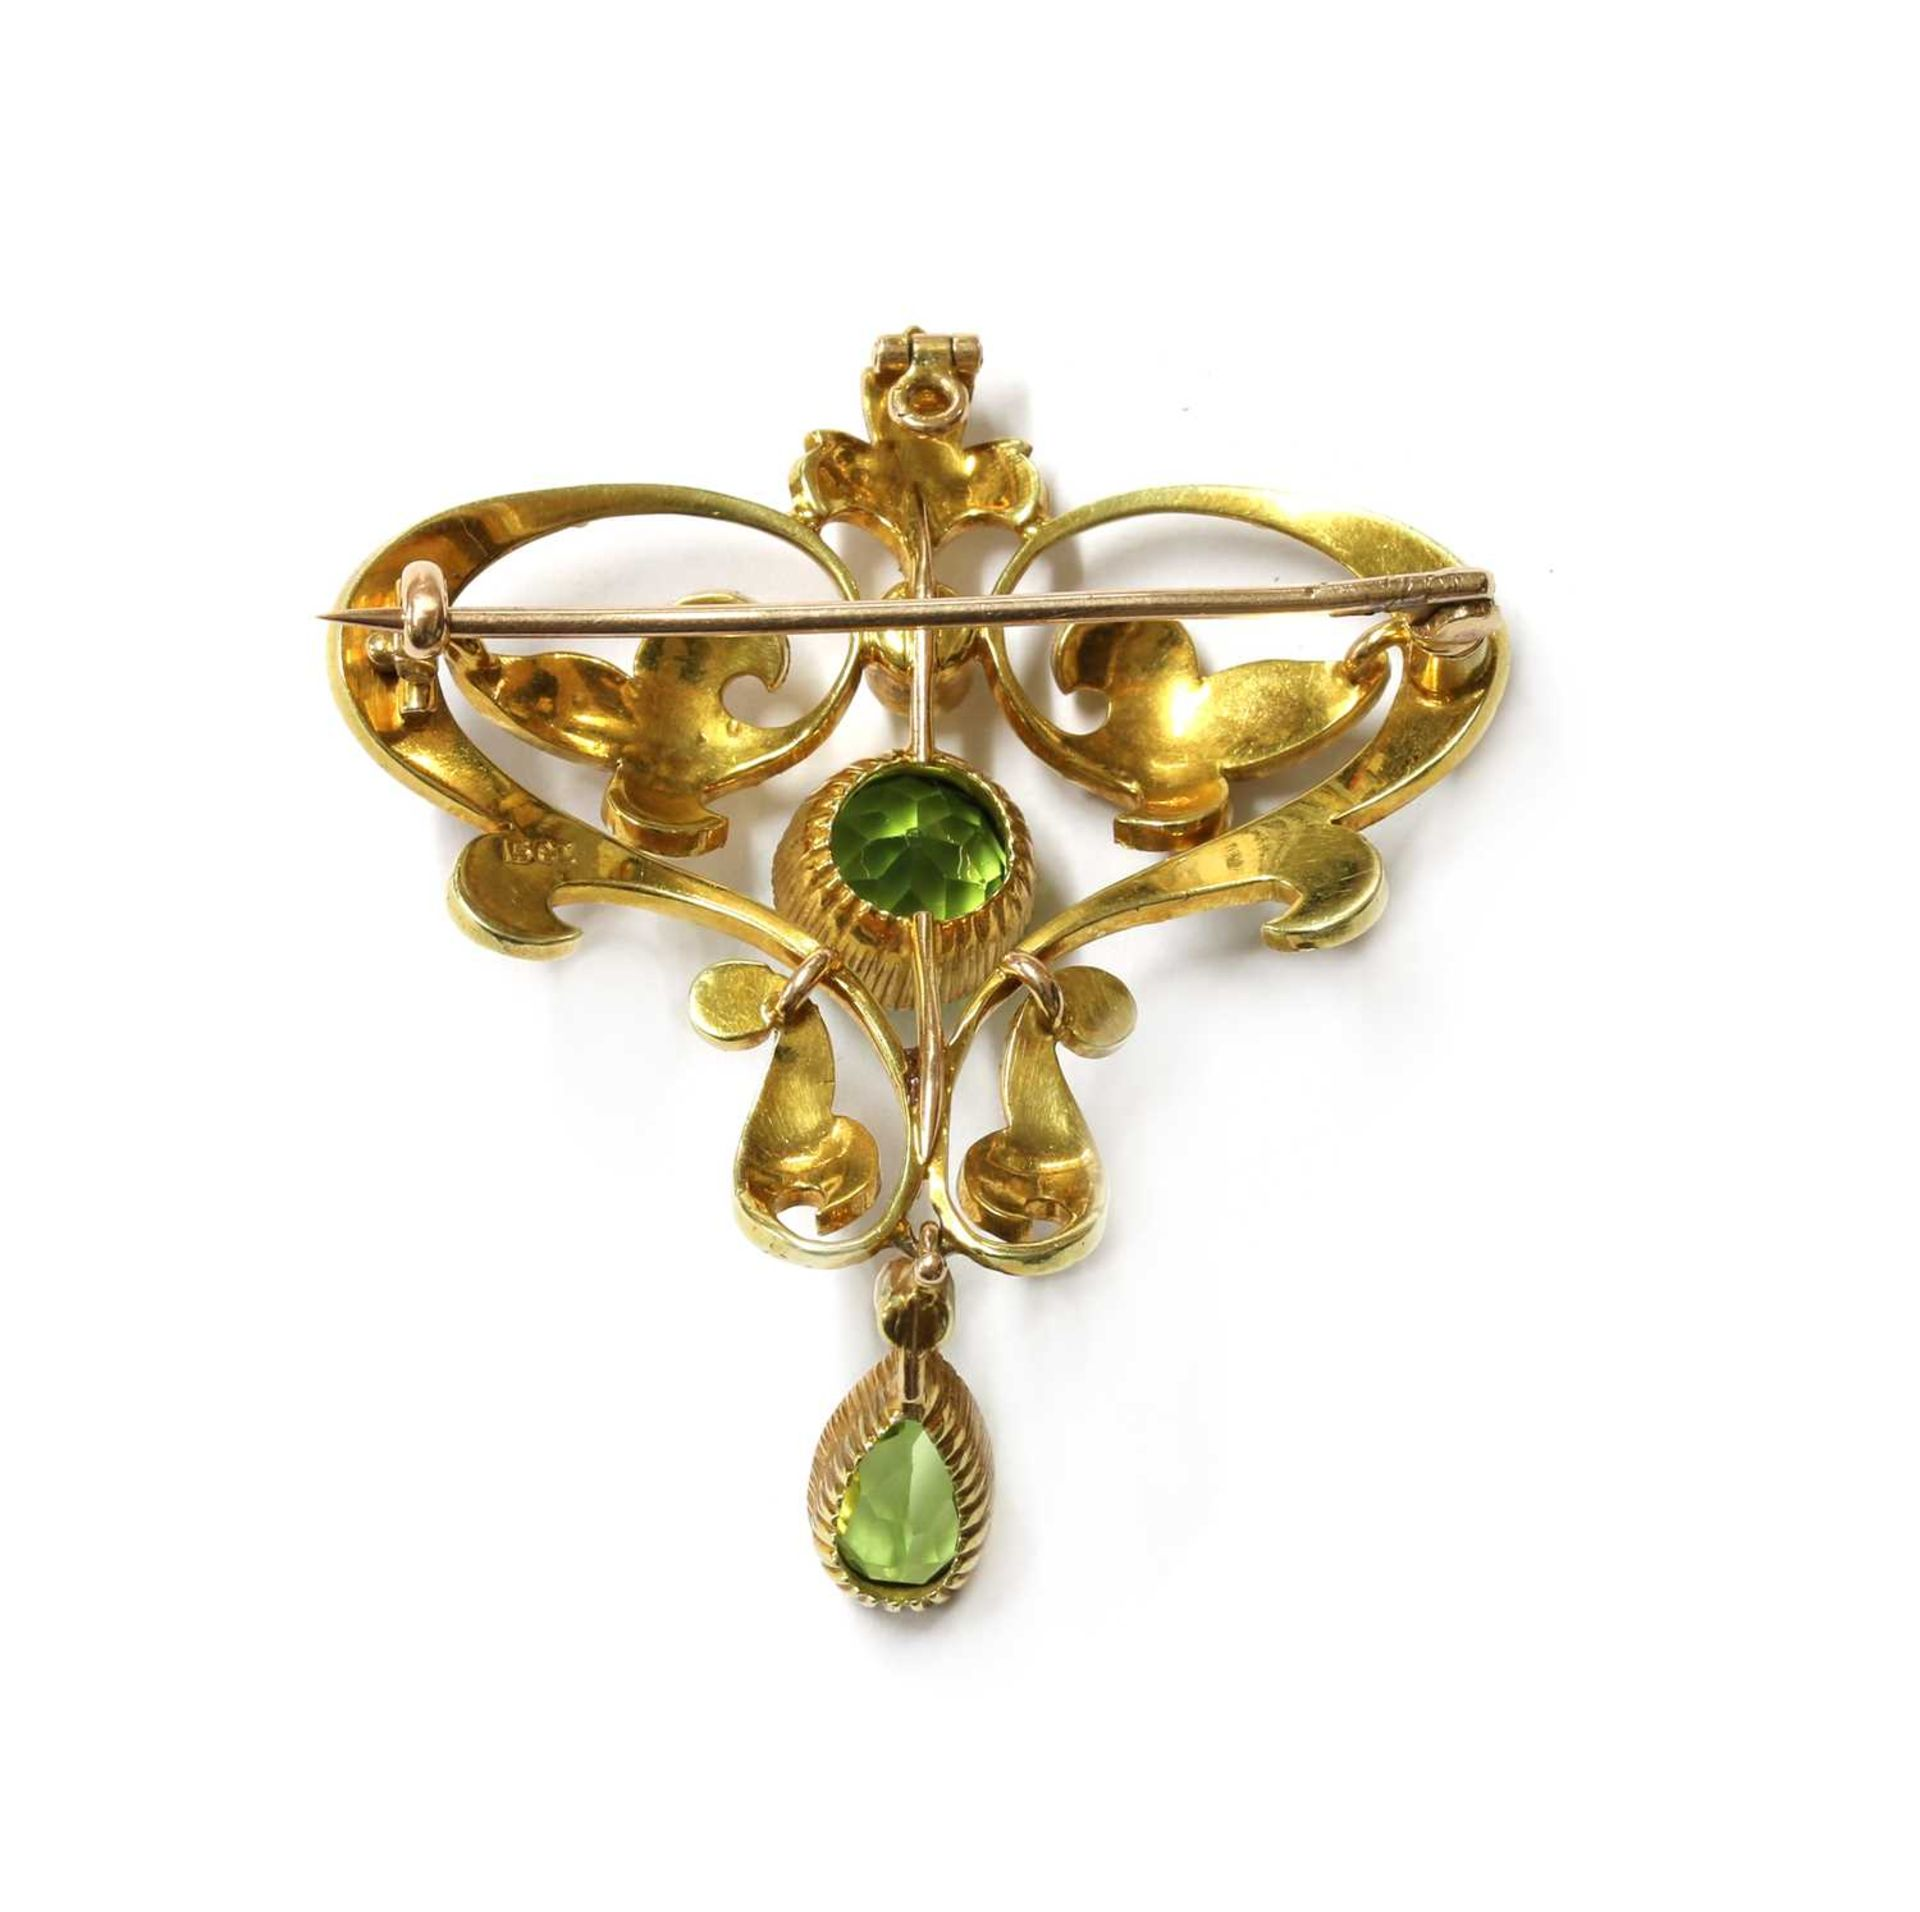 An Edwardian gold peridot and split pearl brooch/pendant, - Image 2 of 2